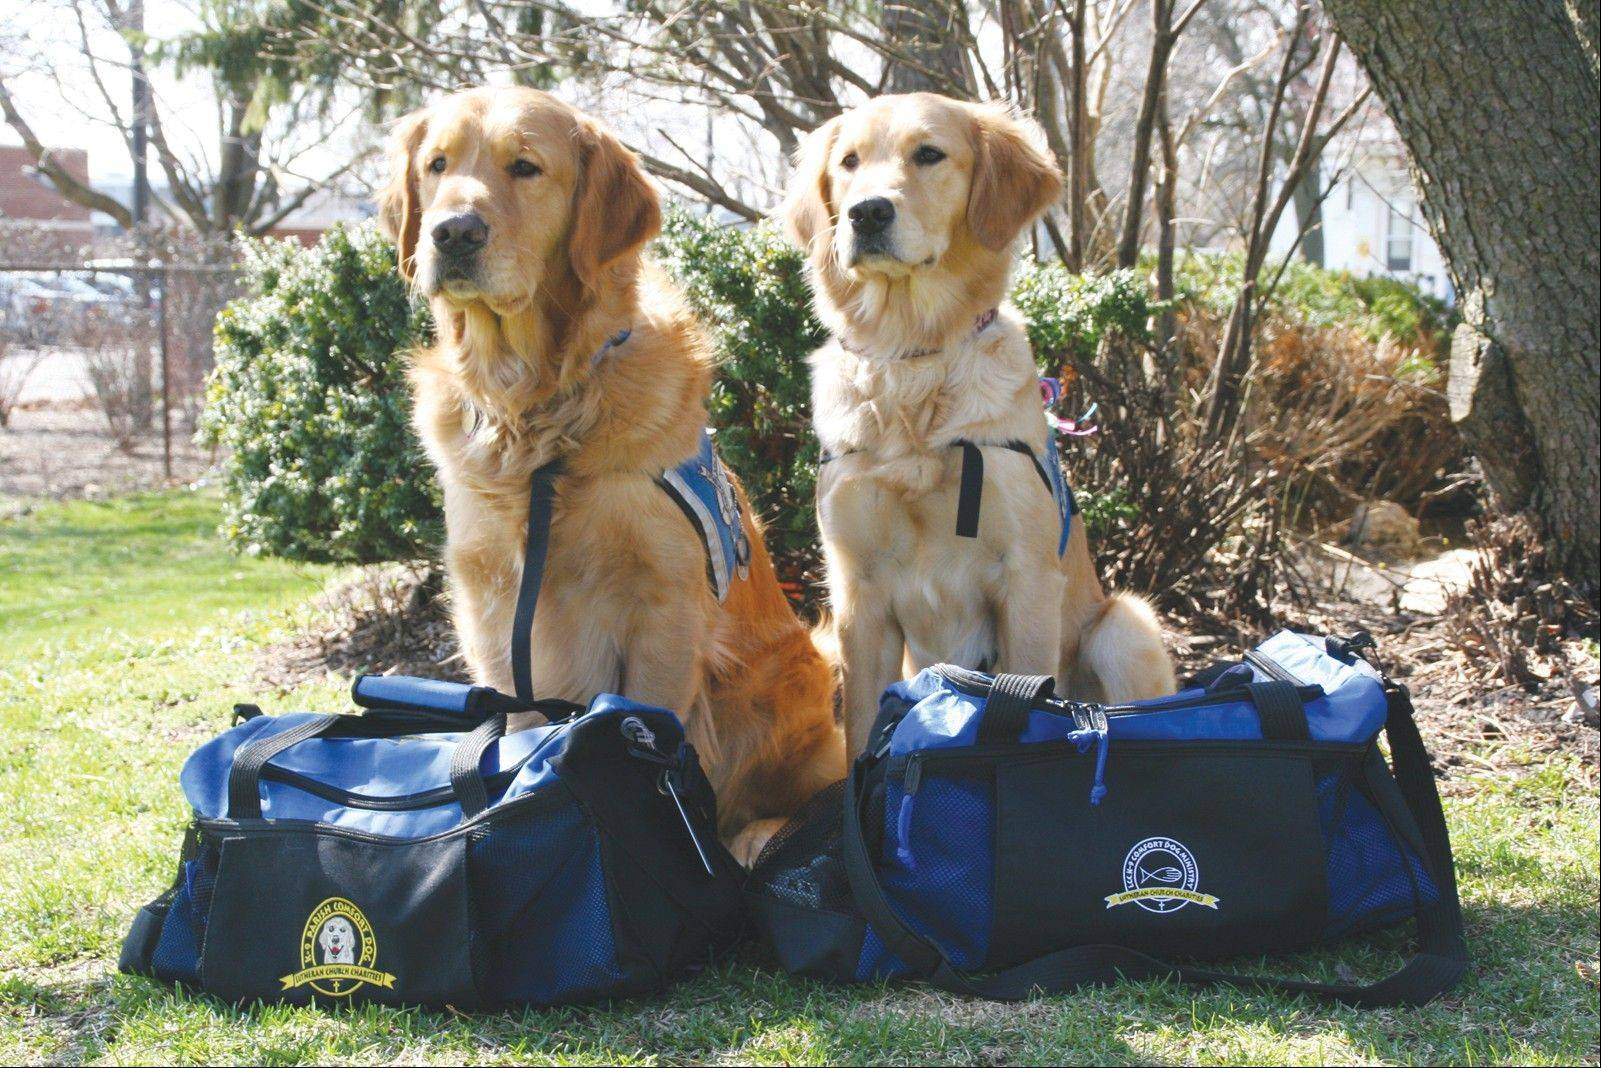 LCC K-9 dogs Luther and Ruthie with bags packed and Boston bound.